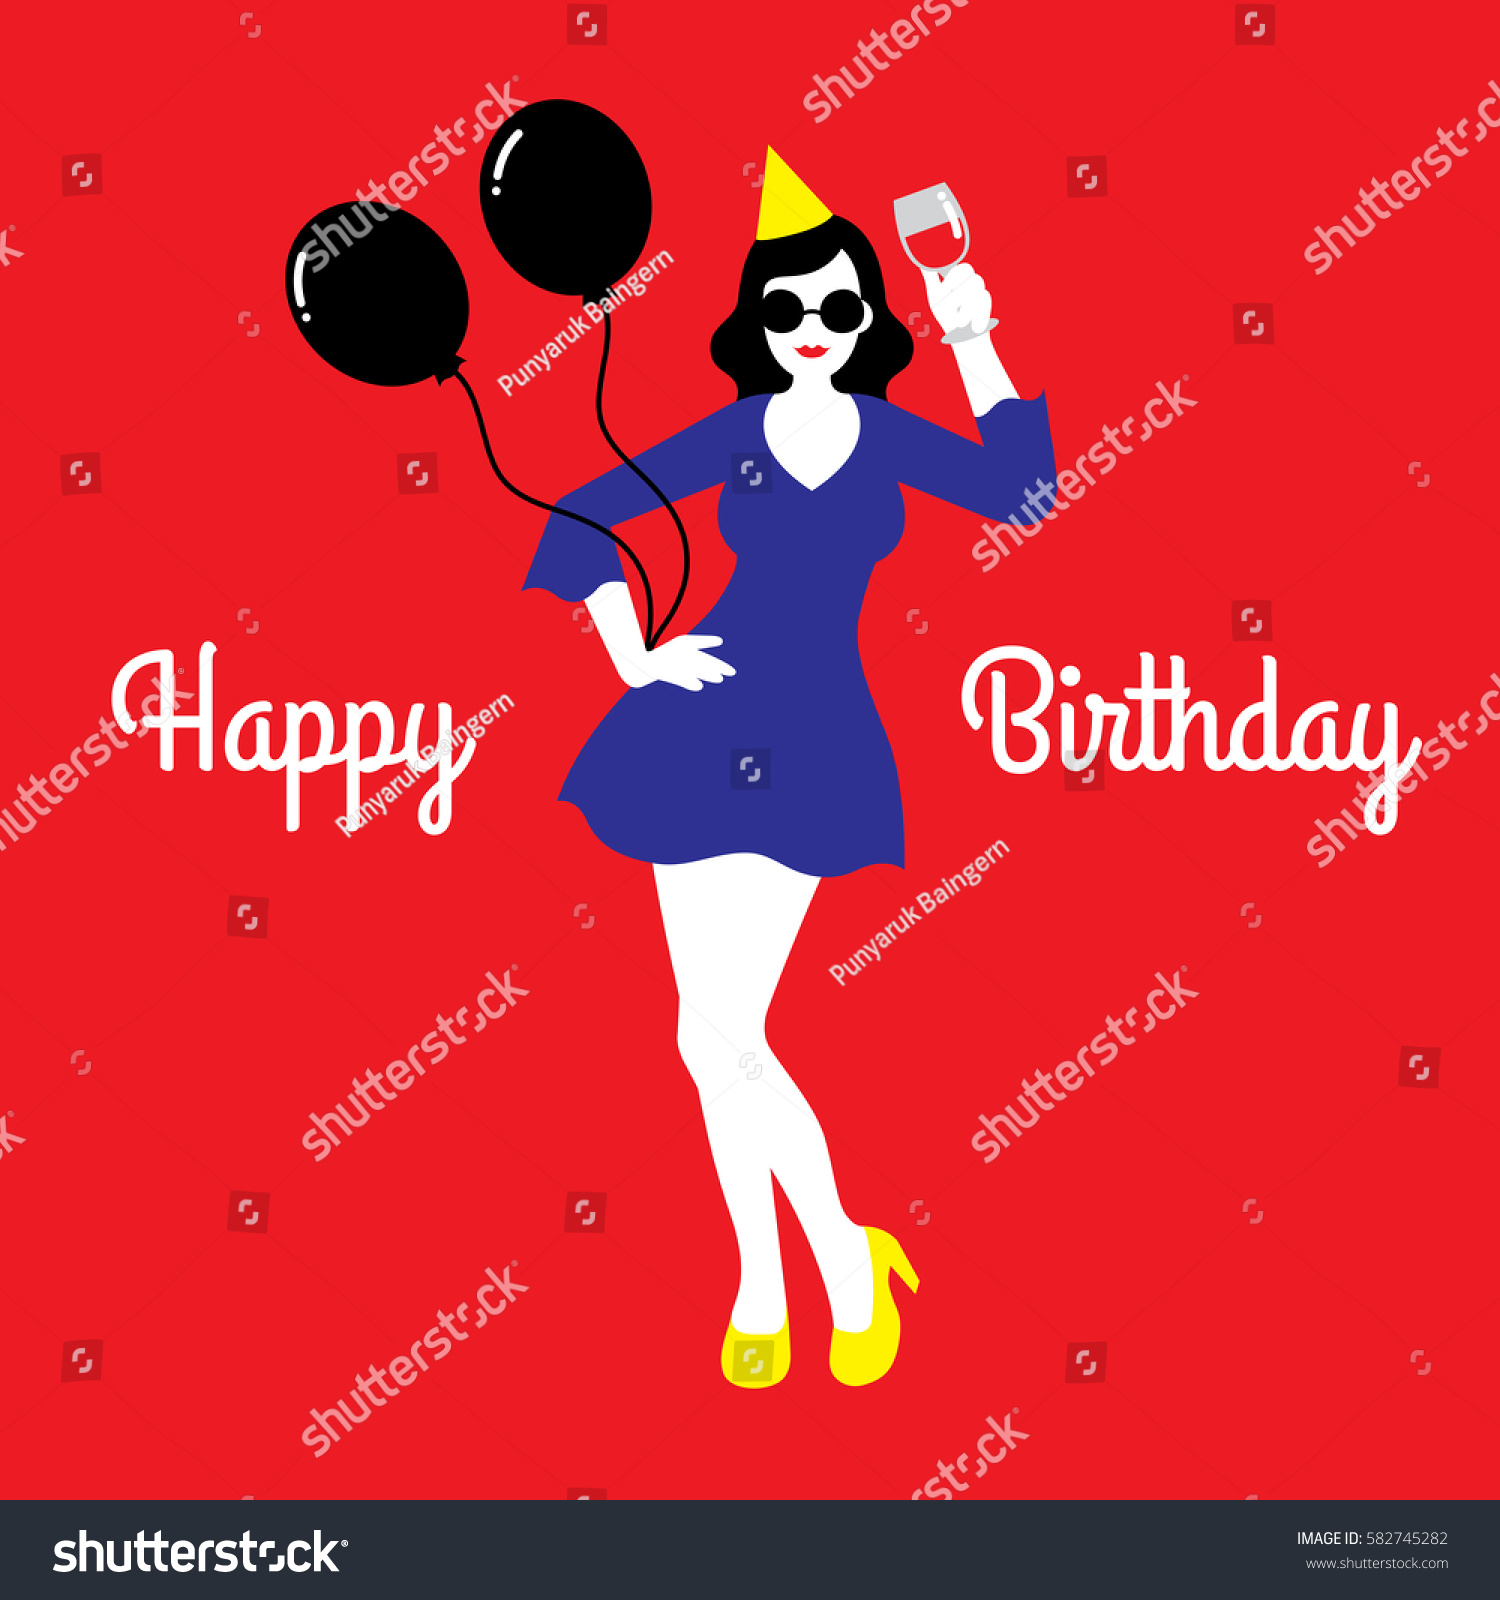 Vector Illustration Of A Happy Birthday Card With Young Woman Wearing Yellow Cocktail Dress